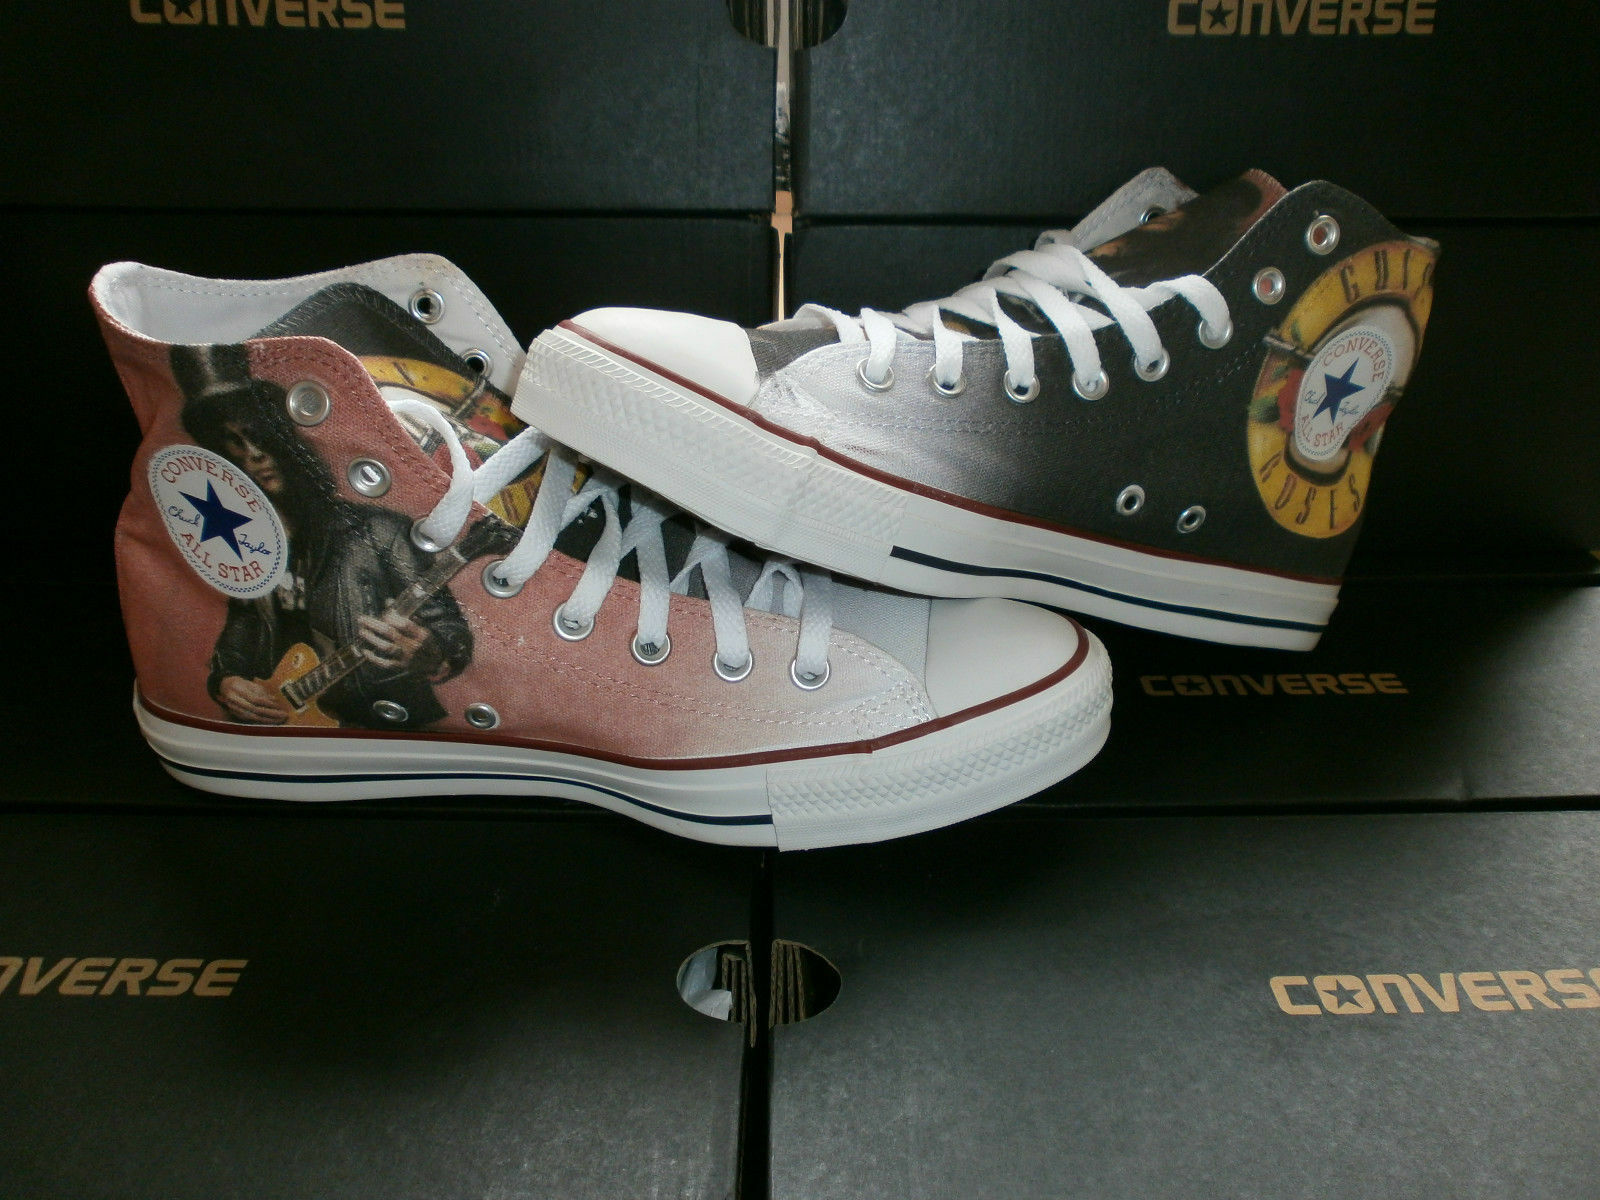 Scarpe sneakers Converse All Star Custom Guns N Roses, artigianali Made in Italy